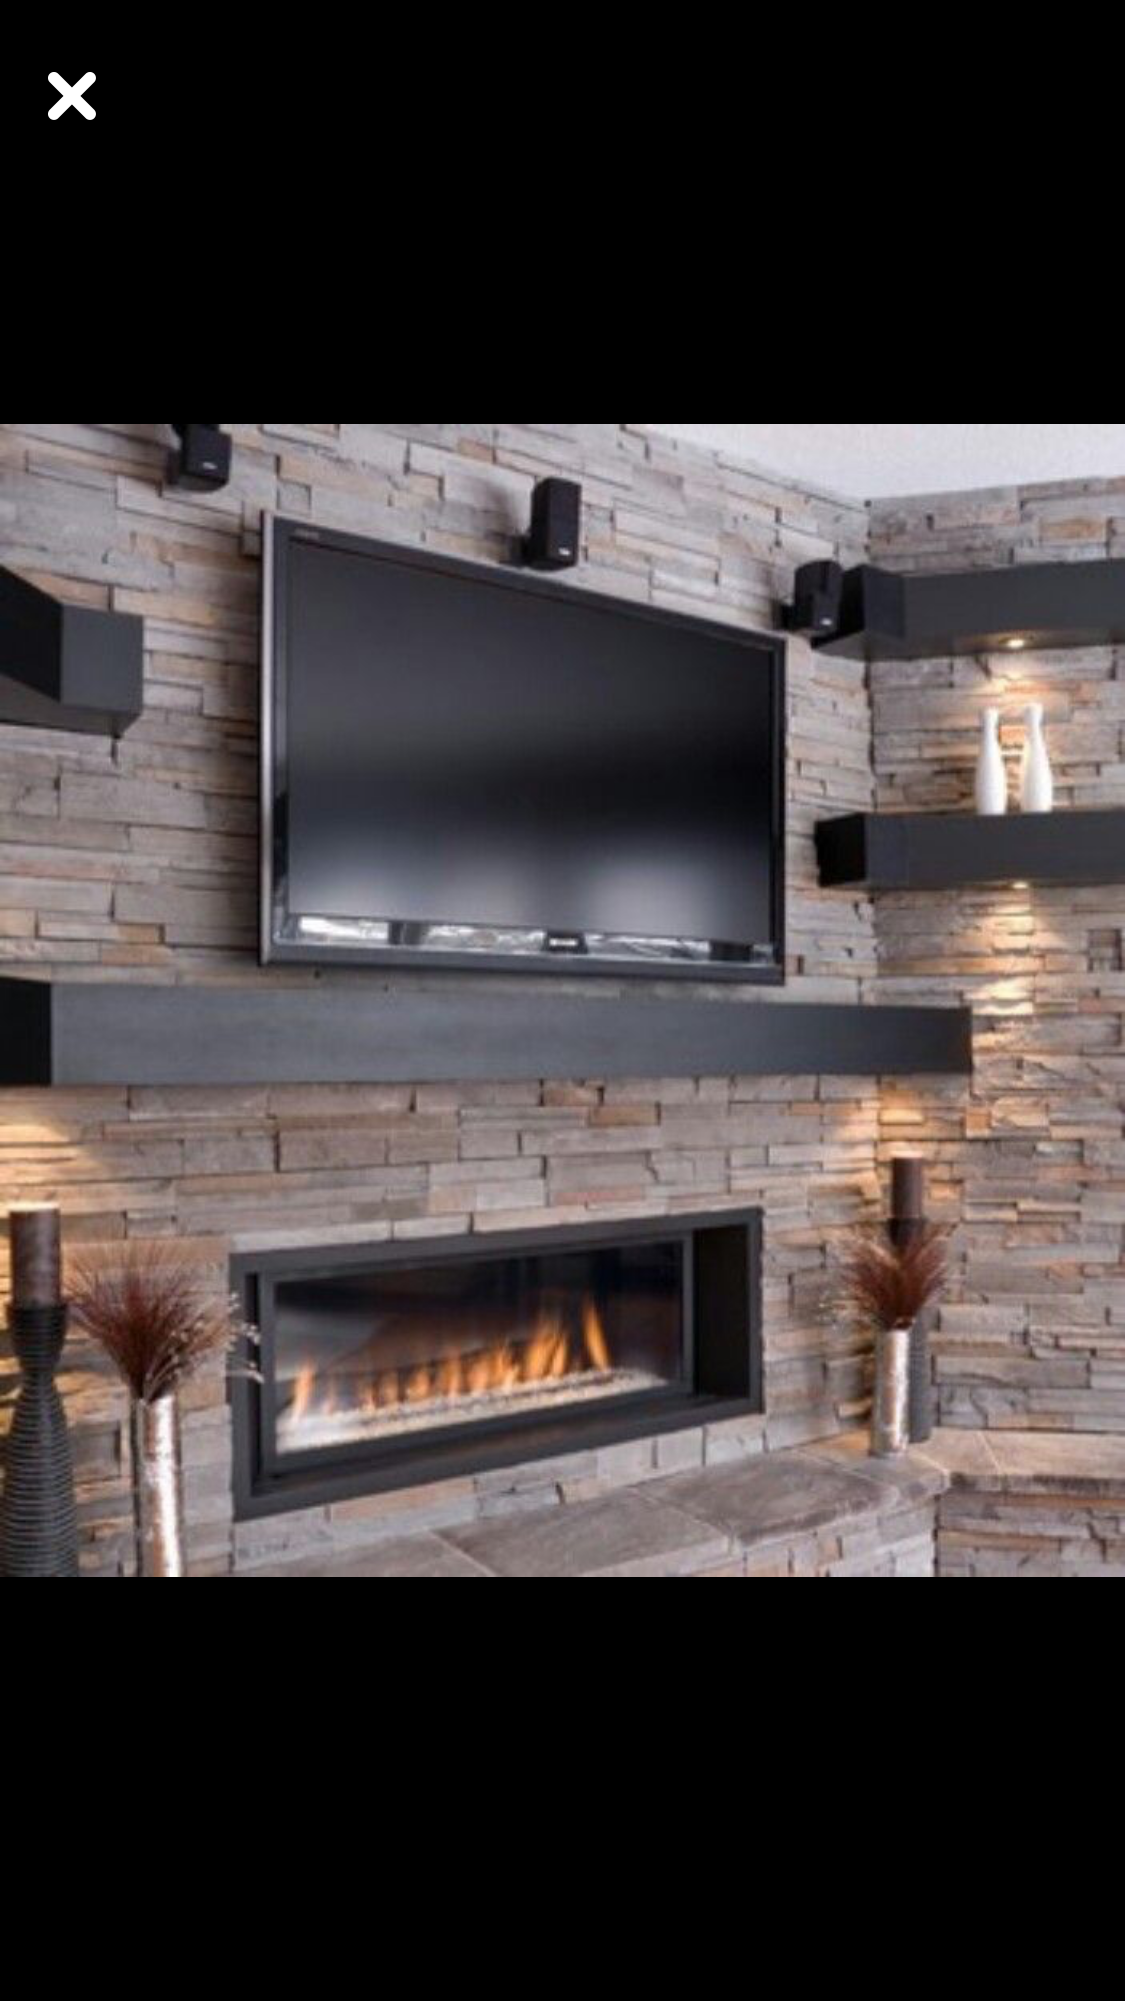 8 Tv Wall Design Ideas For Your Living Room: 14+ Modern TV Wall Mount Ideas For Your Best Room